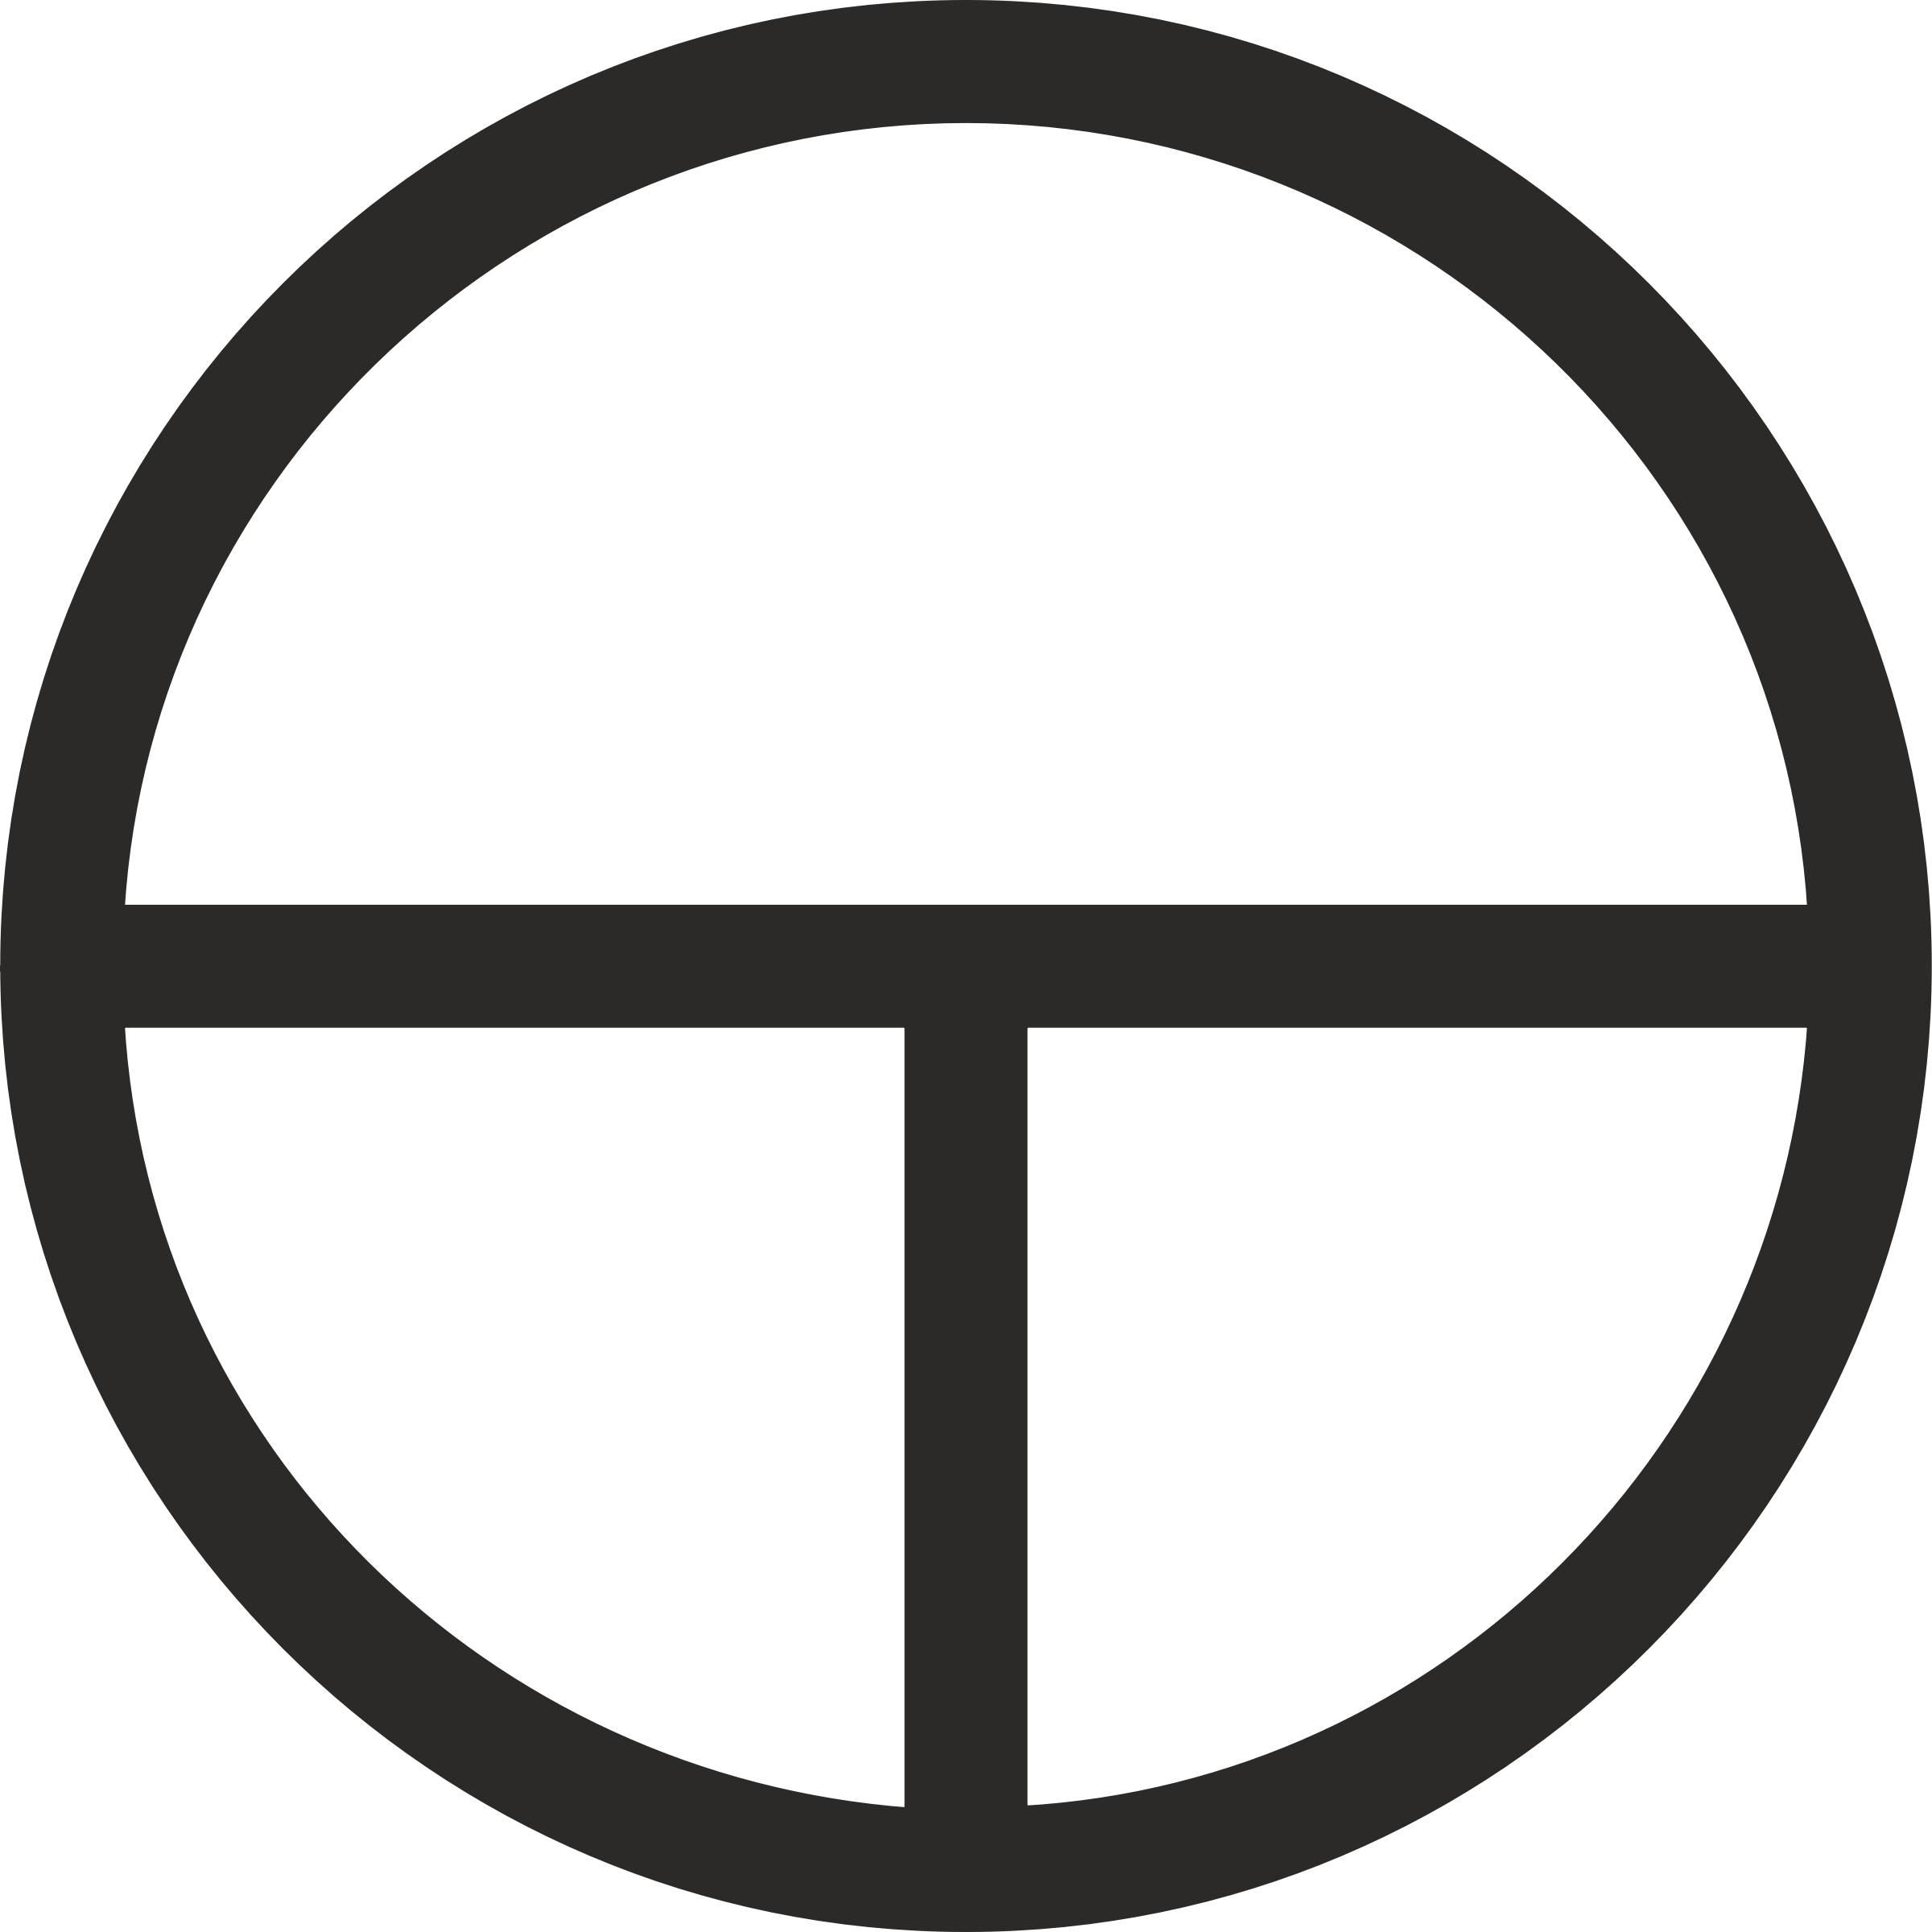 Tau Cross Encircled by alkon